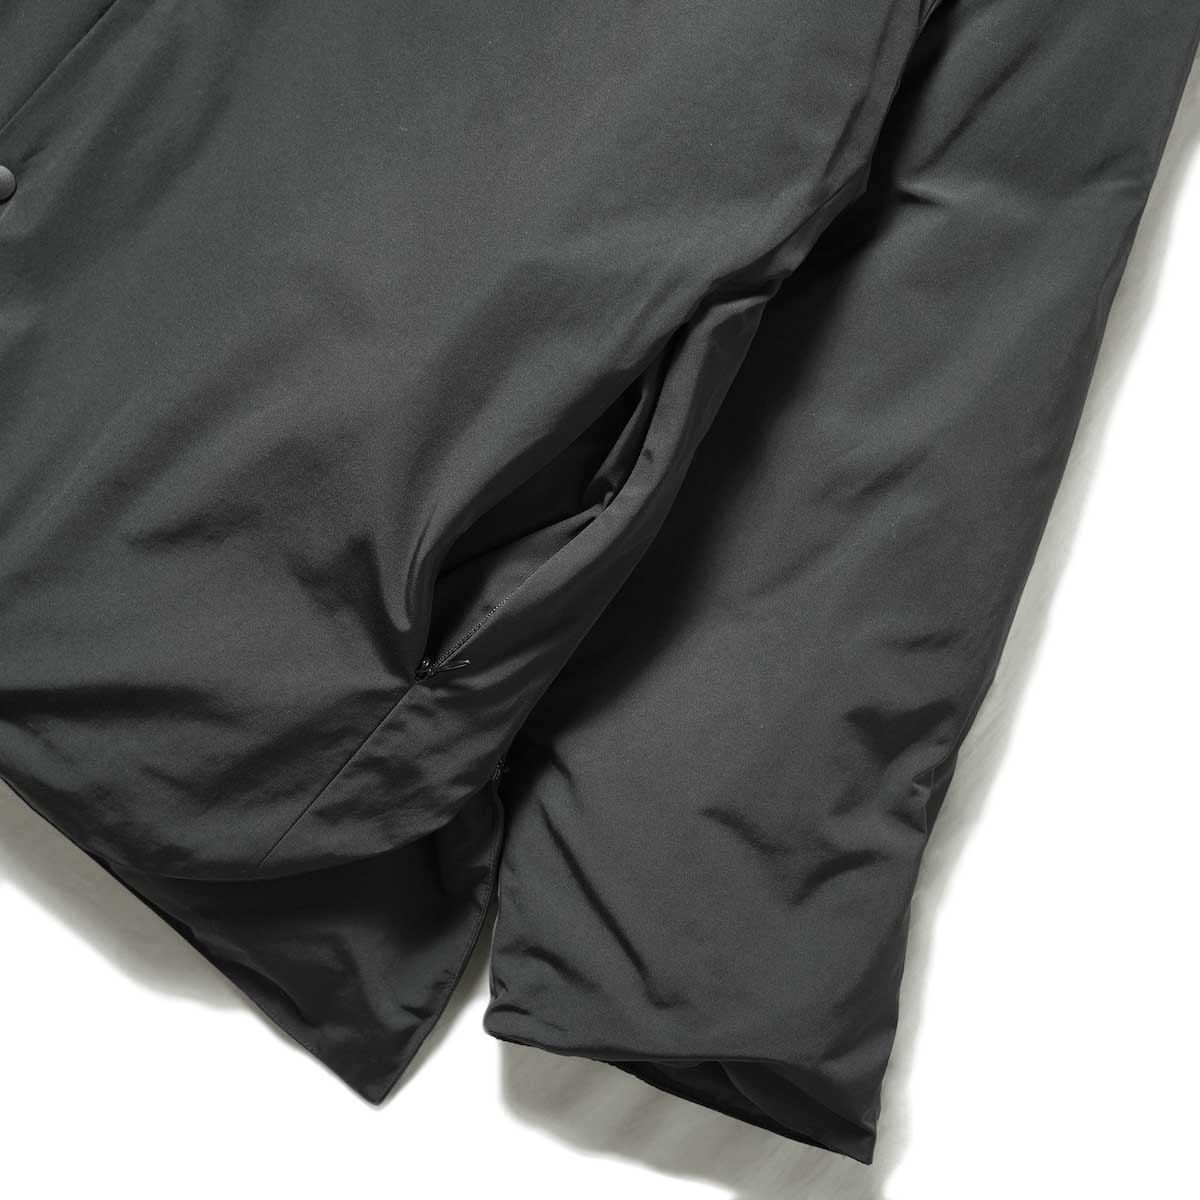 blurhms / Stand-up Collar Down Jacket (Black) 袖・裾・ポケット